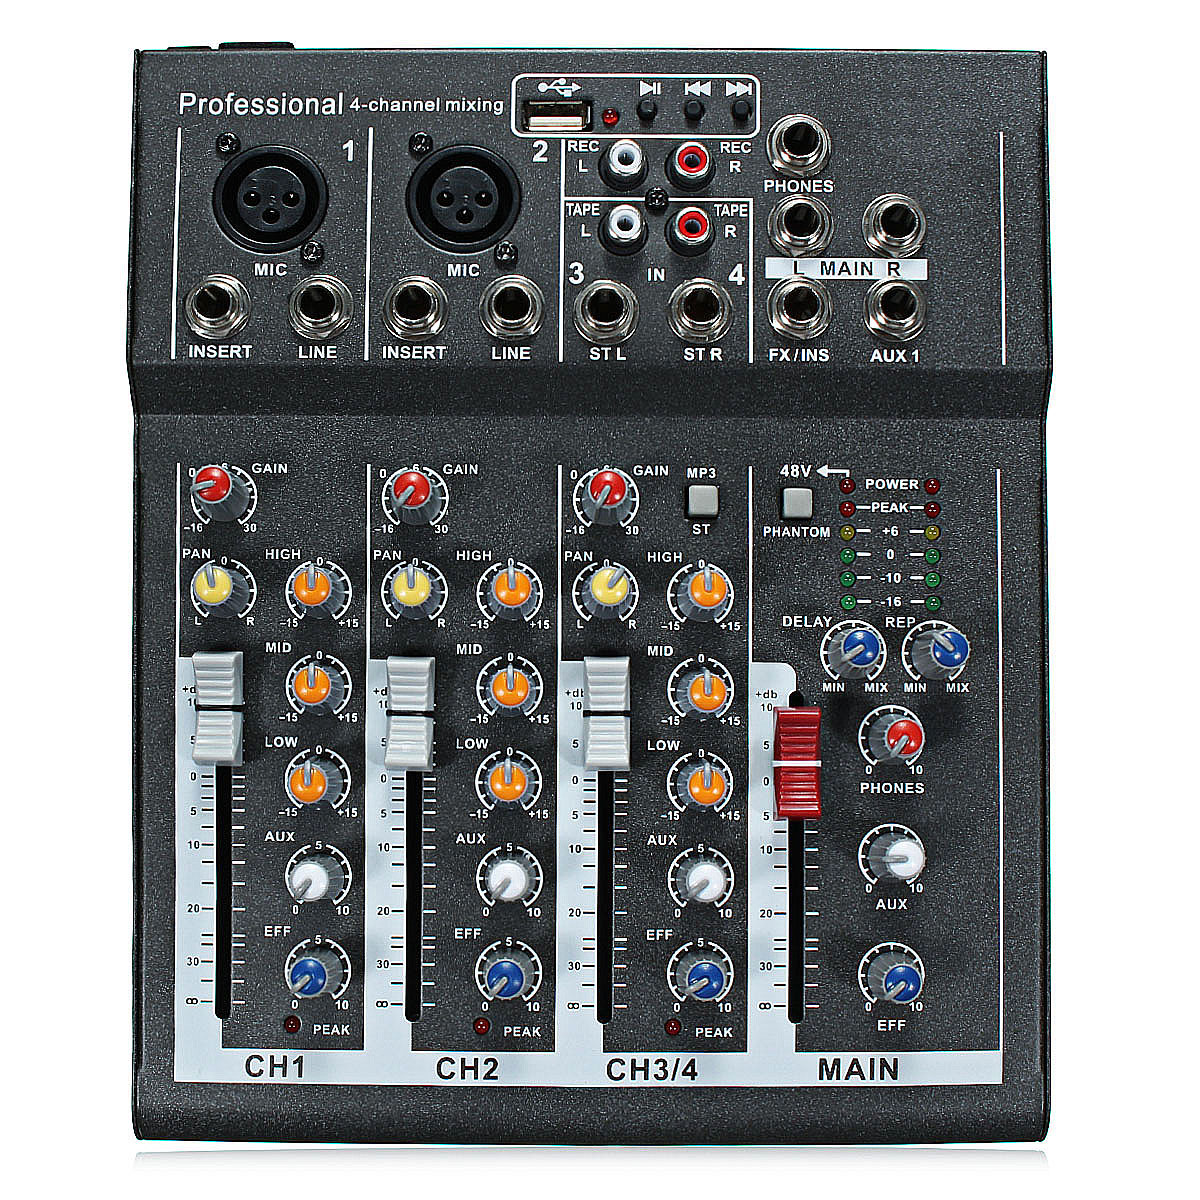 48v professional 4 channel live studio audio sound usb mixer mixing console. Black Bedroom Furniture Sets. Home Design Ideas